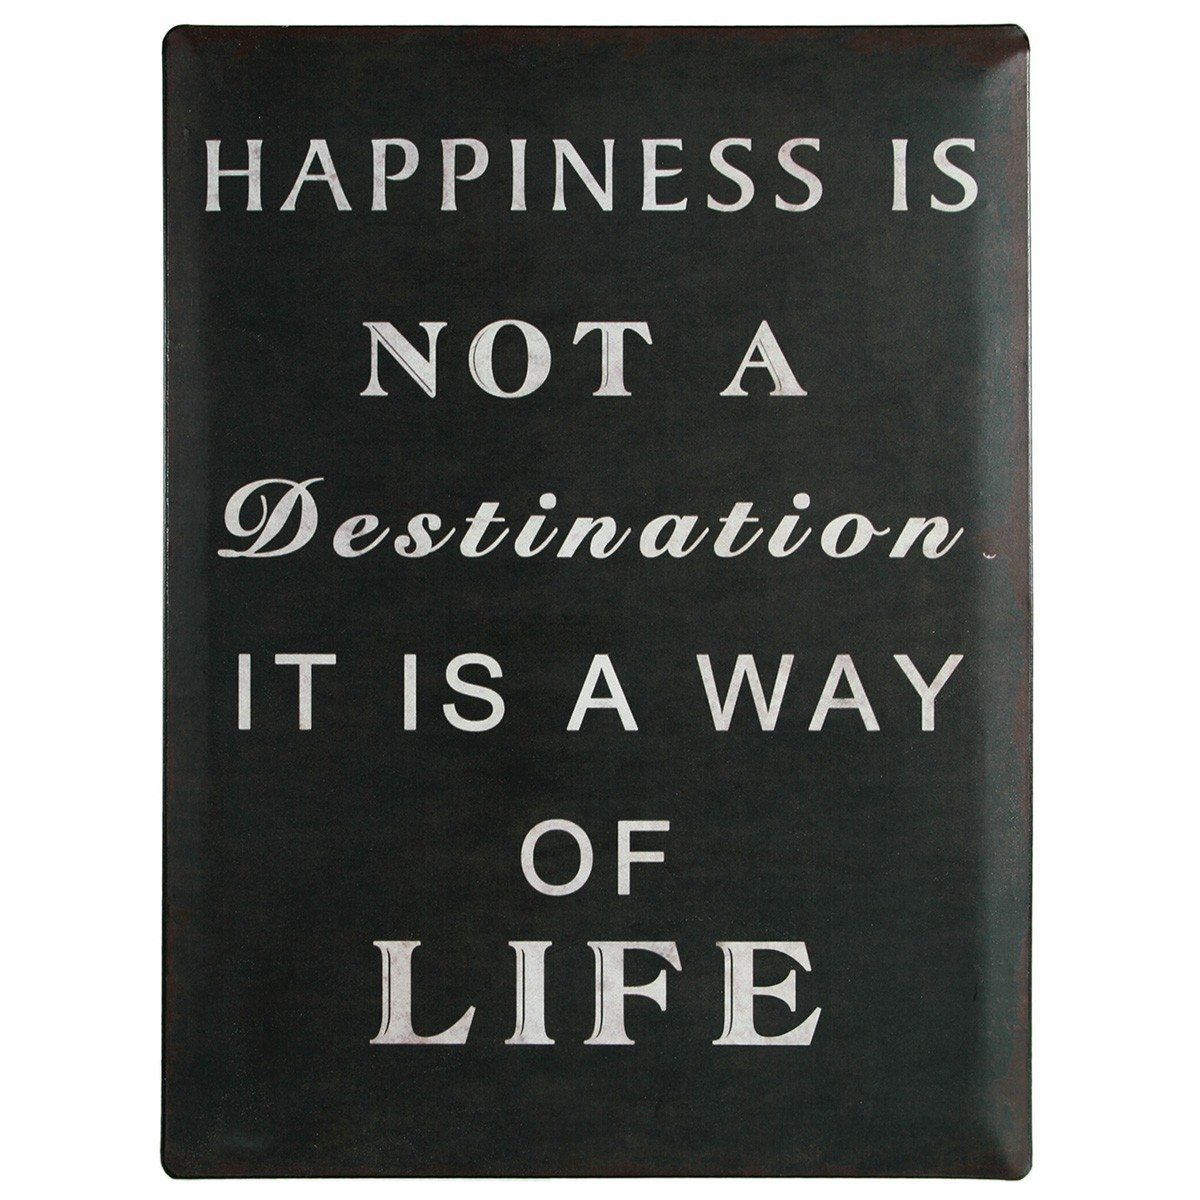 Pancarte d'antan - Happiness is not a destination…